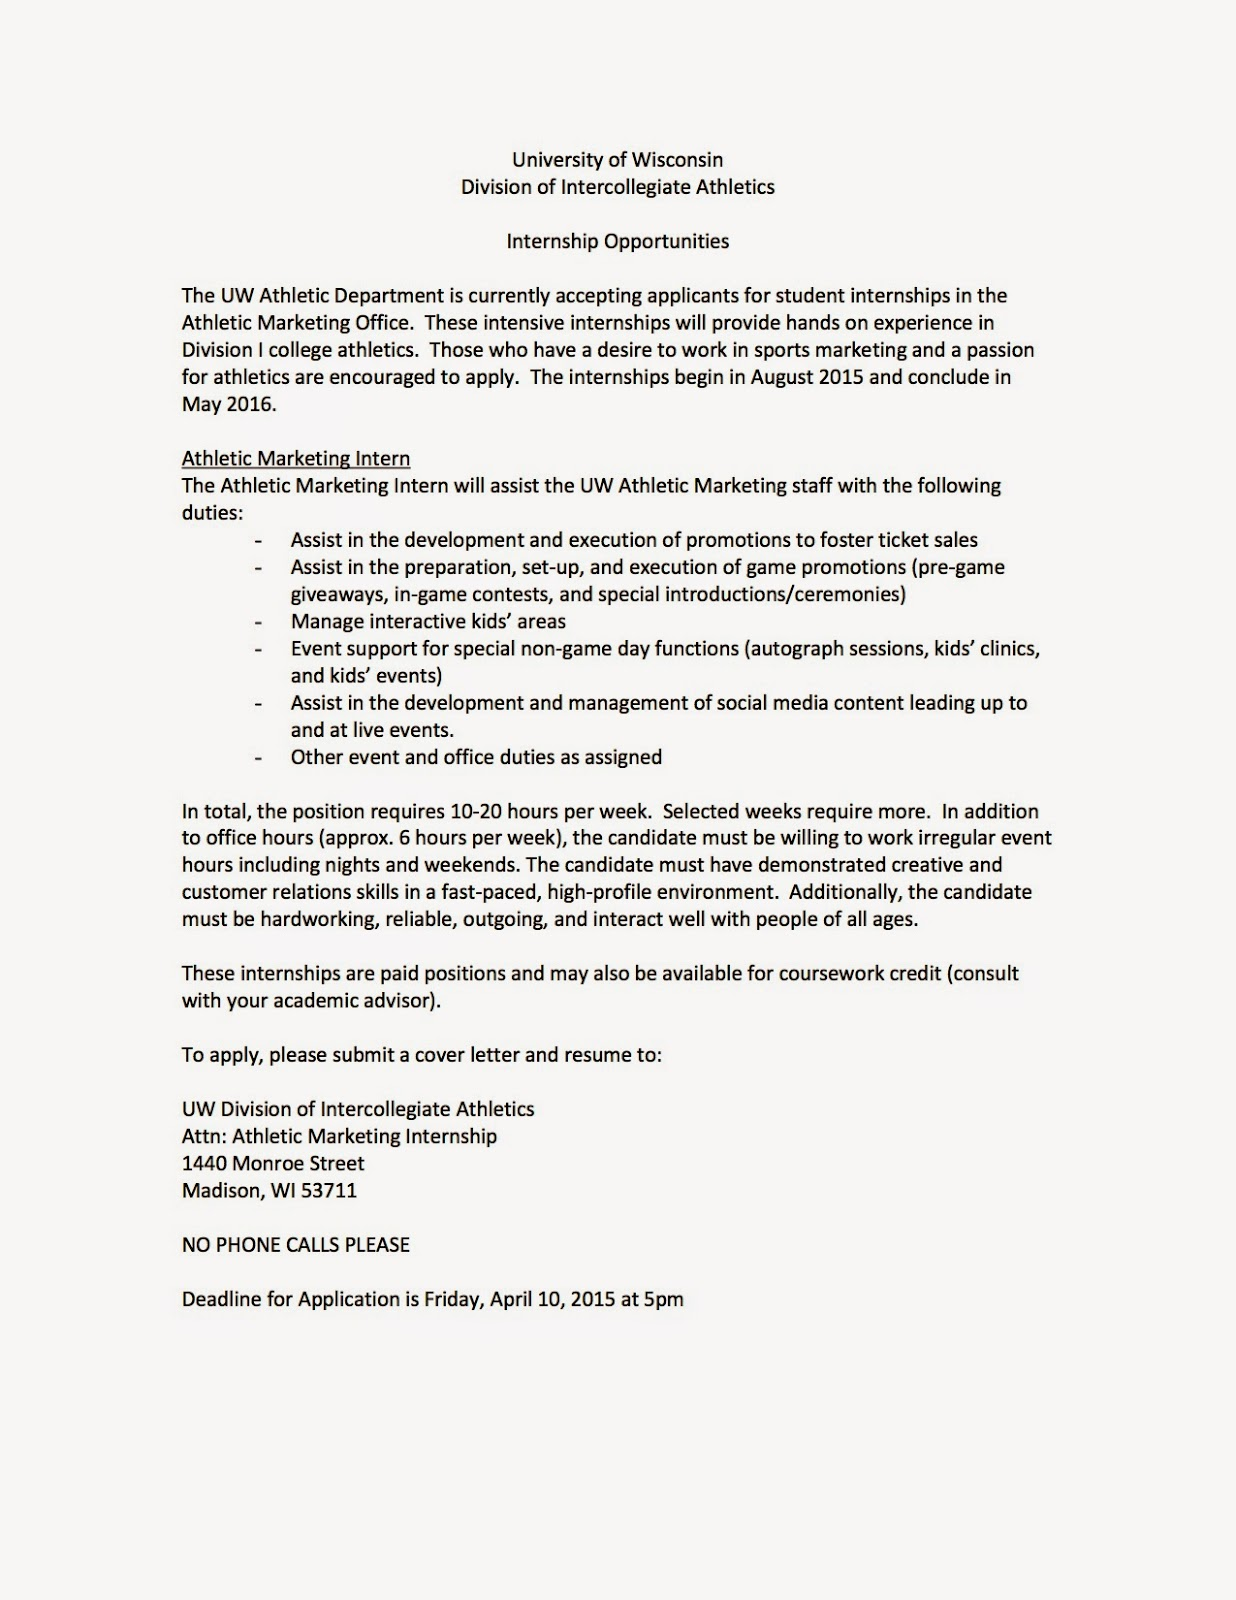 marketing internship with the uw athletic department - Cover Letter For Marketing Internship